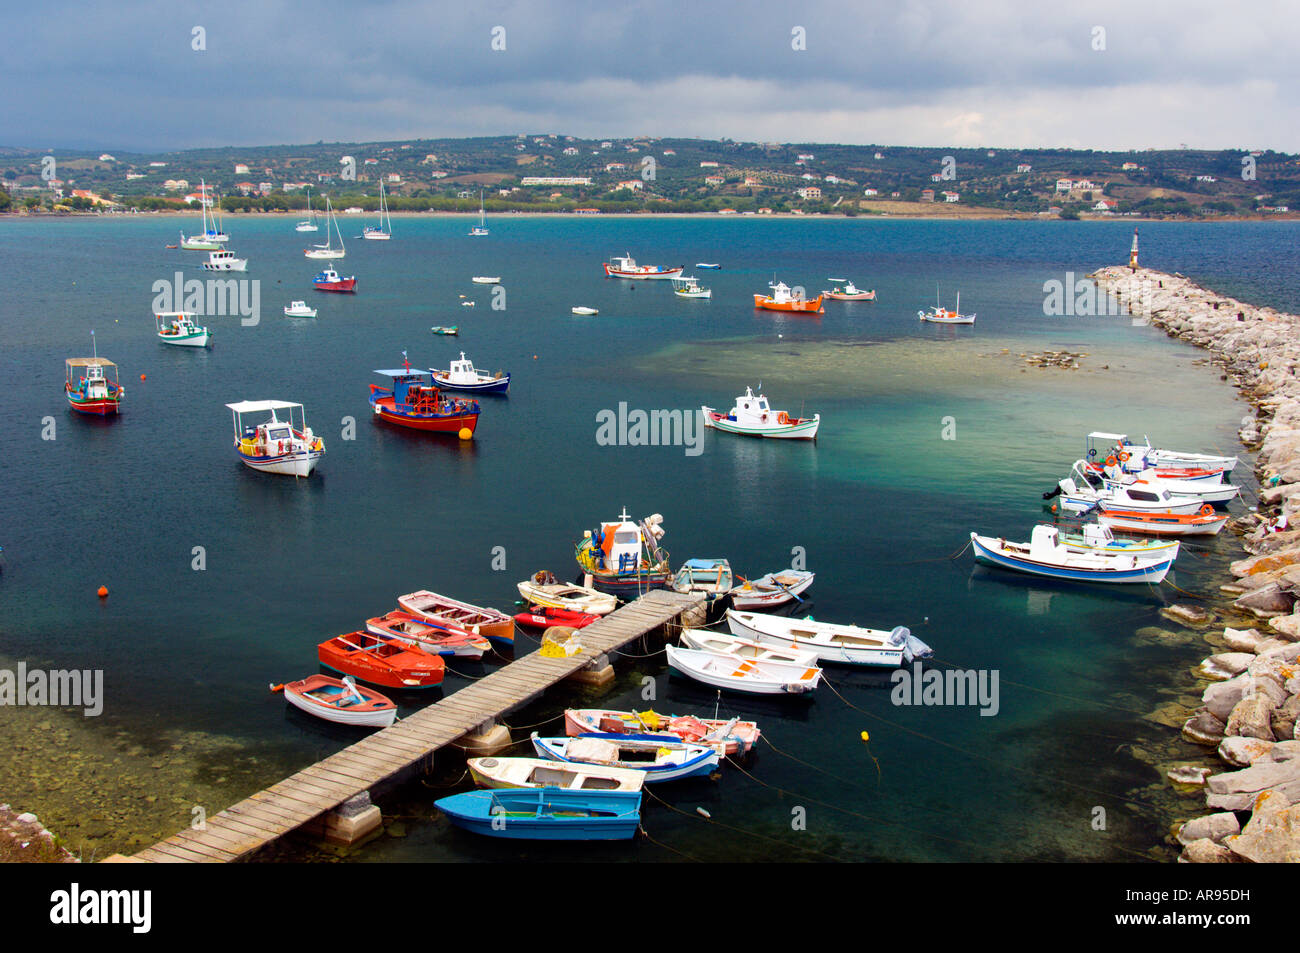 The harbour and boats at Methoni Messinia Peloponesse Greece - Stock Image